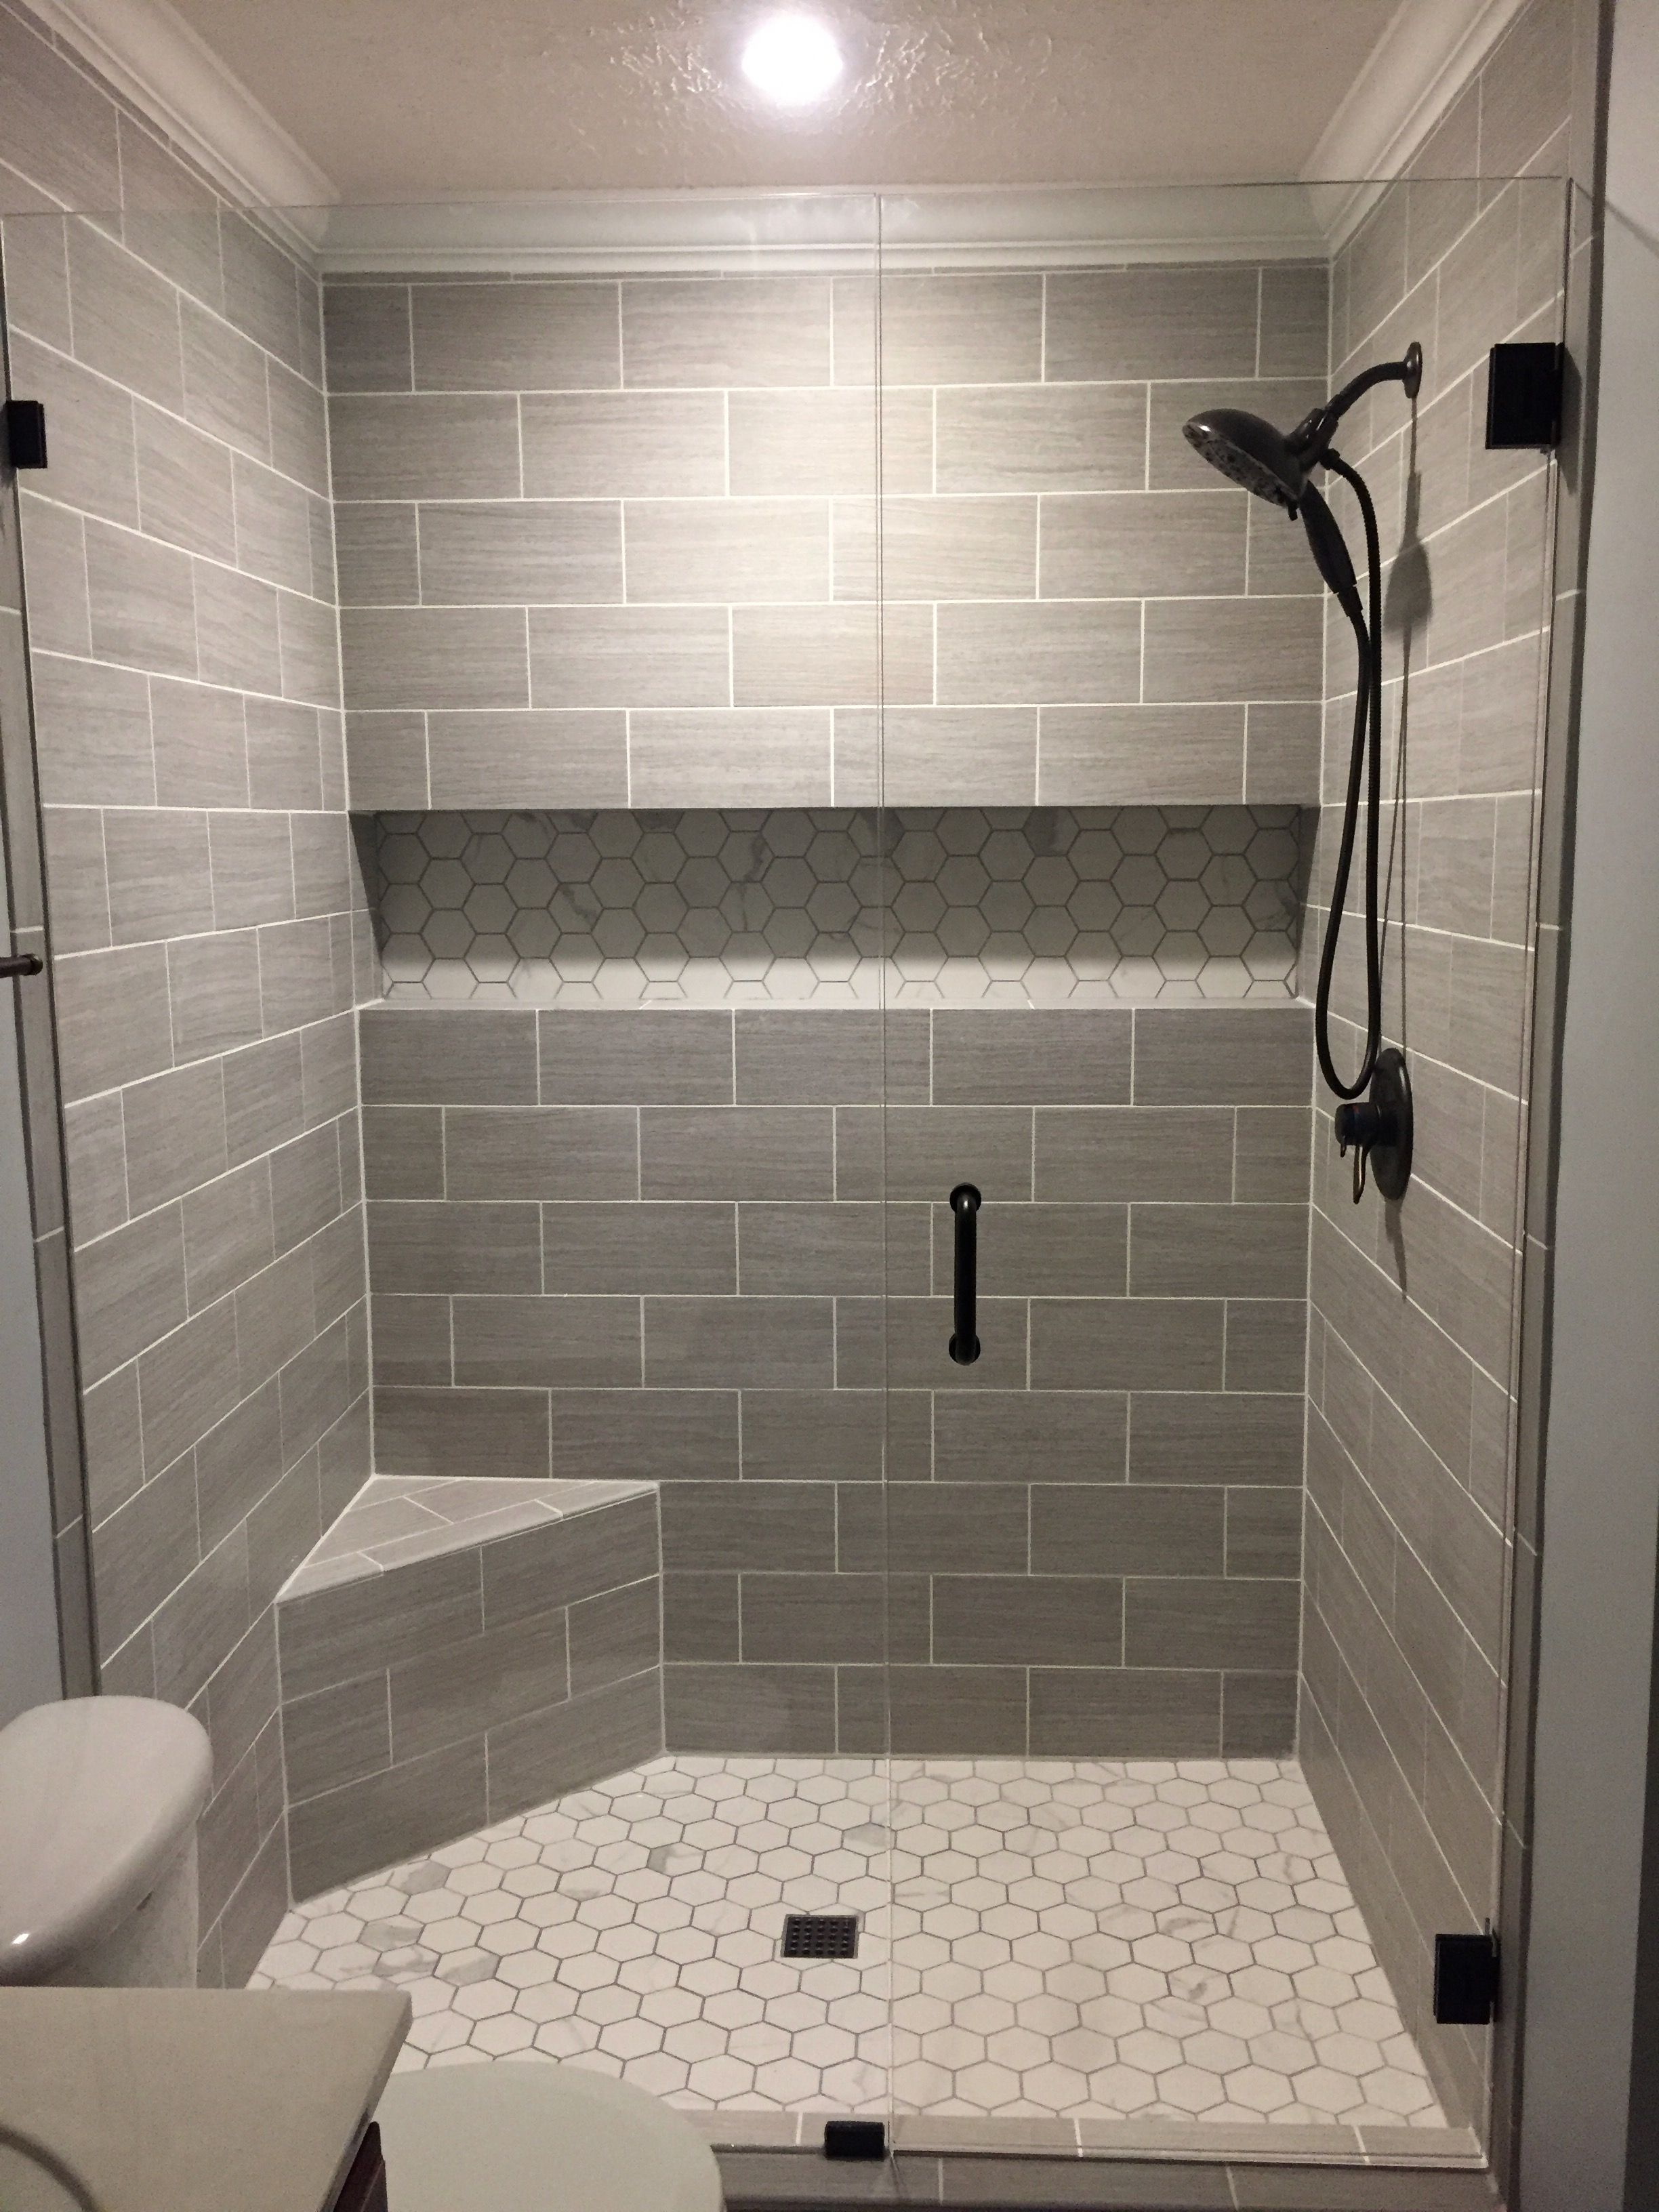 Our Finished Walk In Shower Walls Florim USA 6x24 Cut